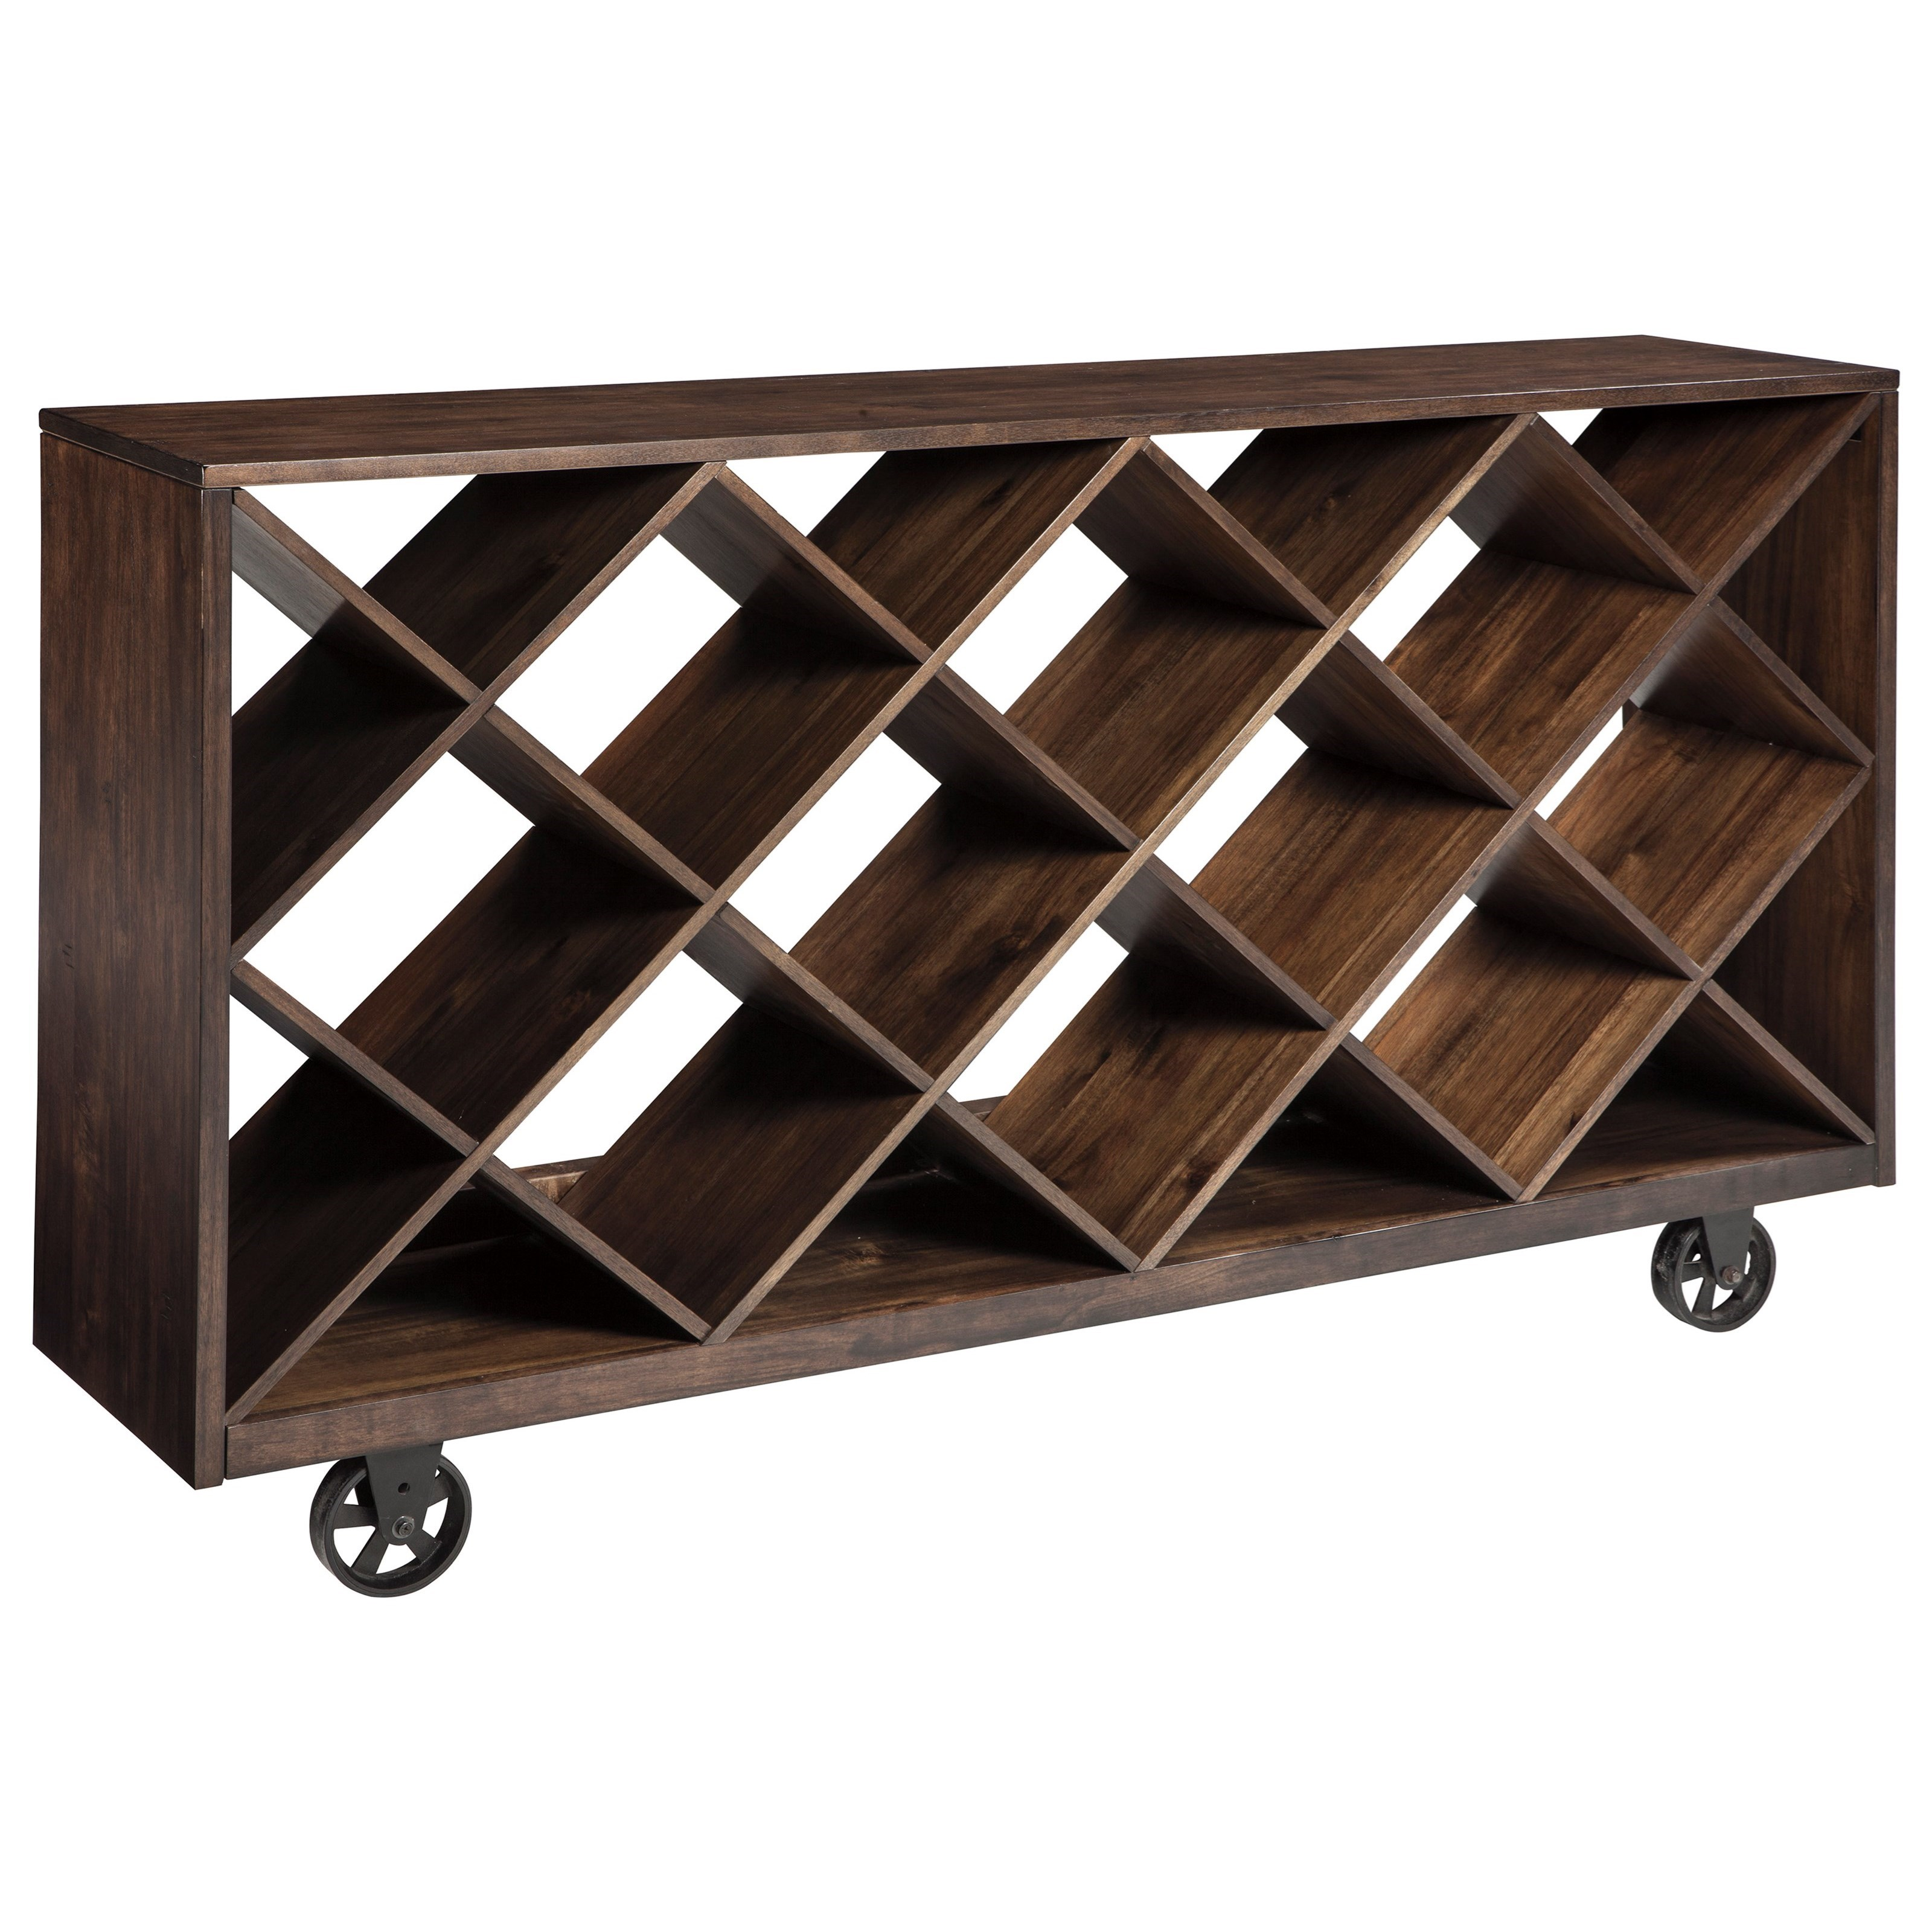 Signature design by ashley starmore t913 5 shelf console for Sofa table on wheels